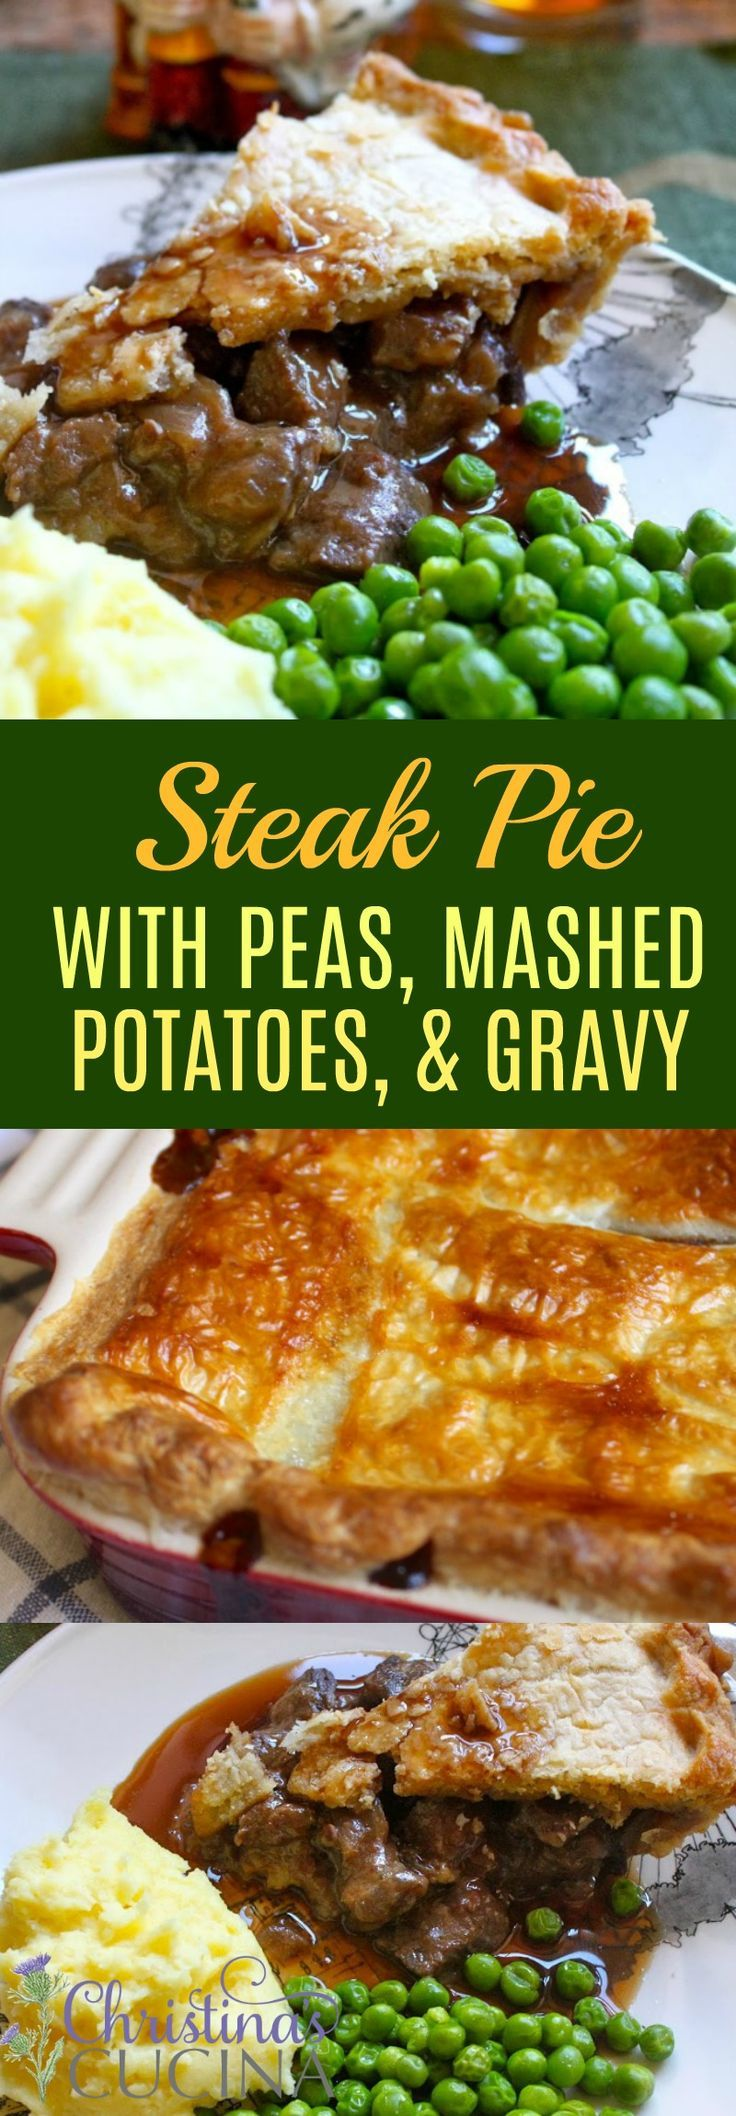 Steak Pie with Peas, Mashed Potatoes, & Gravy | Steak pie ...